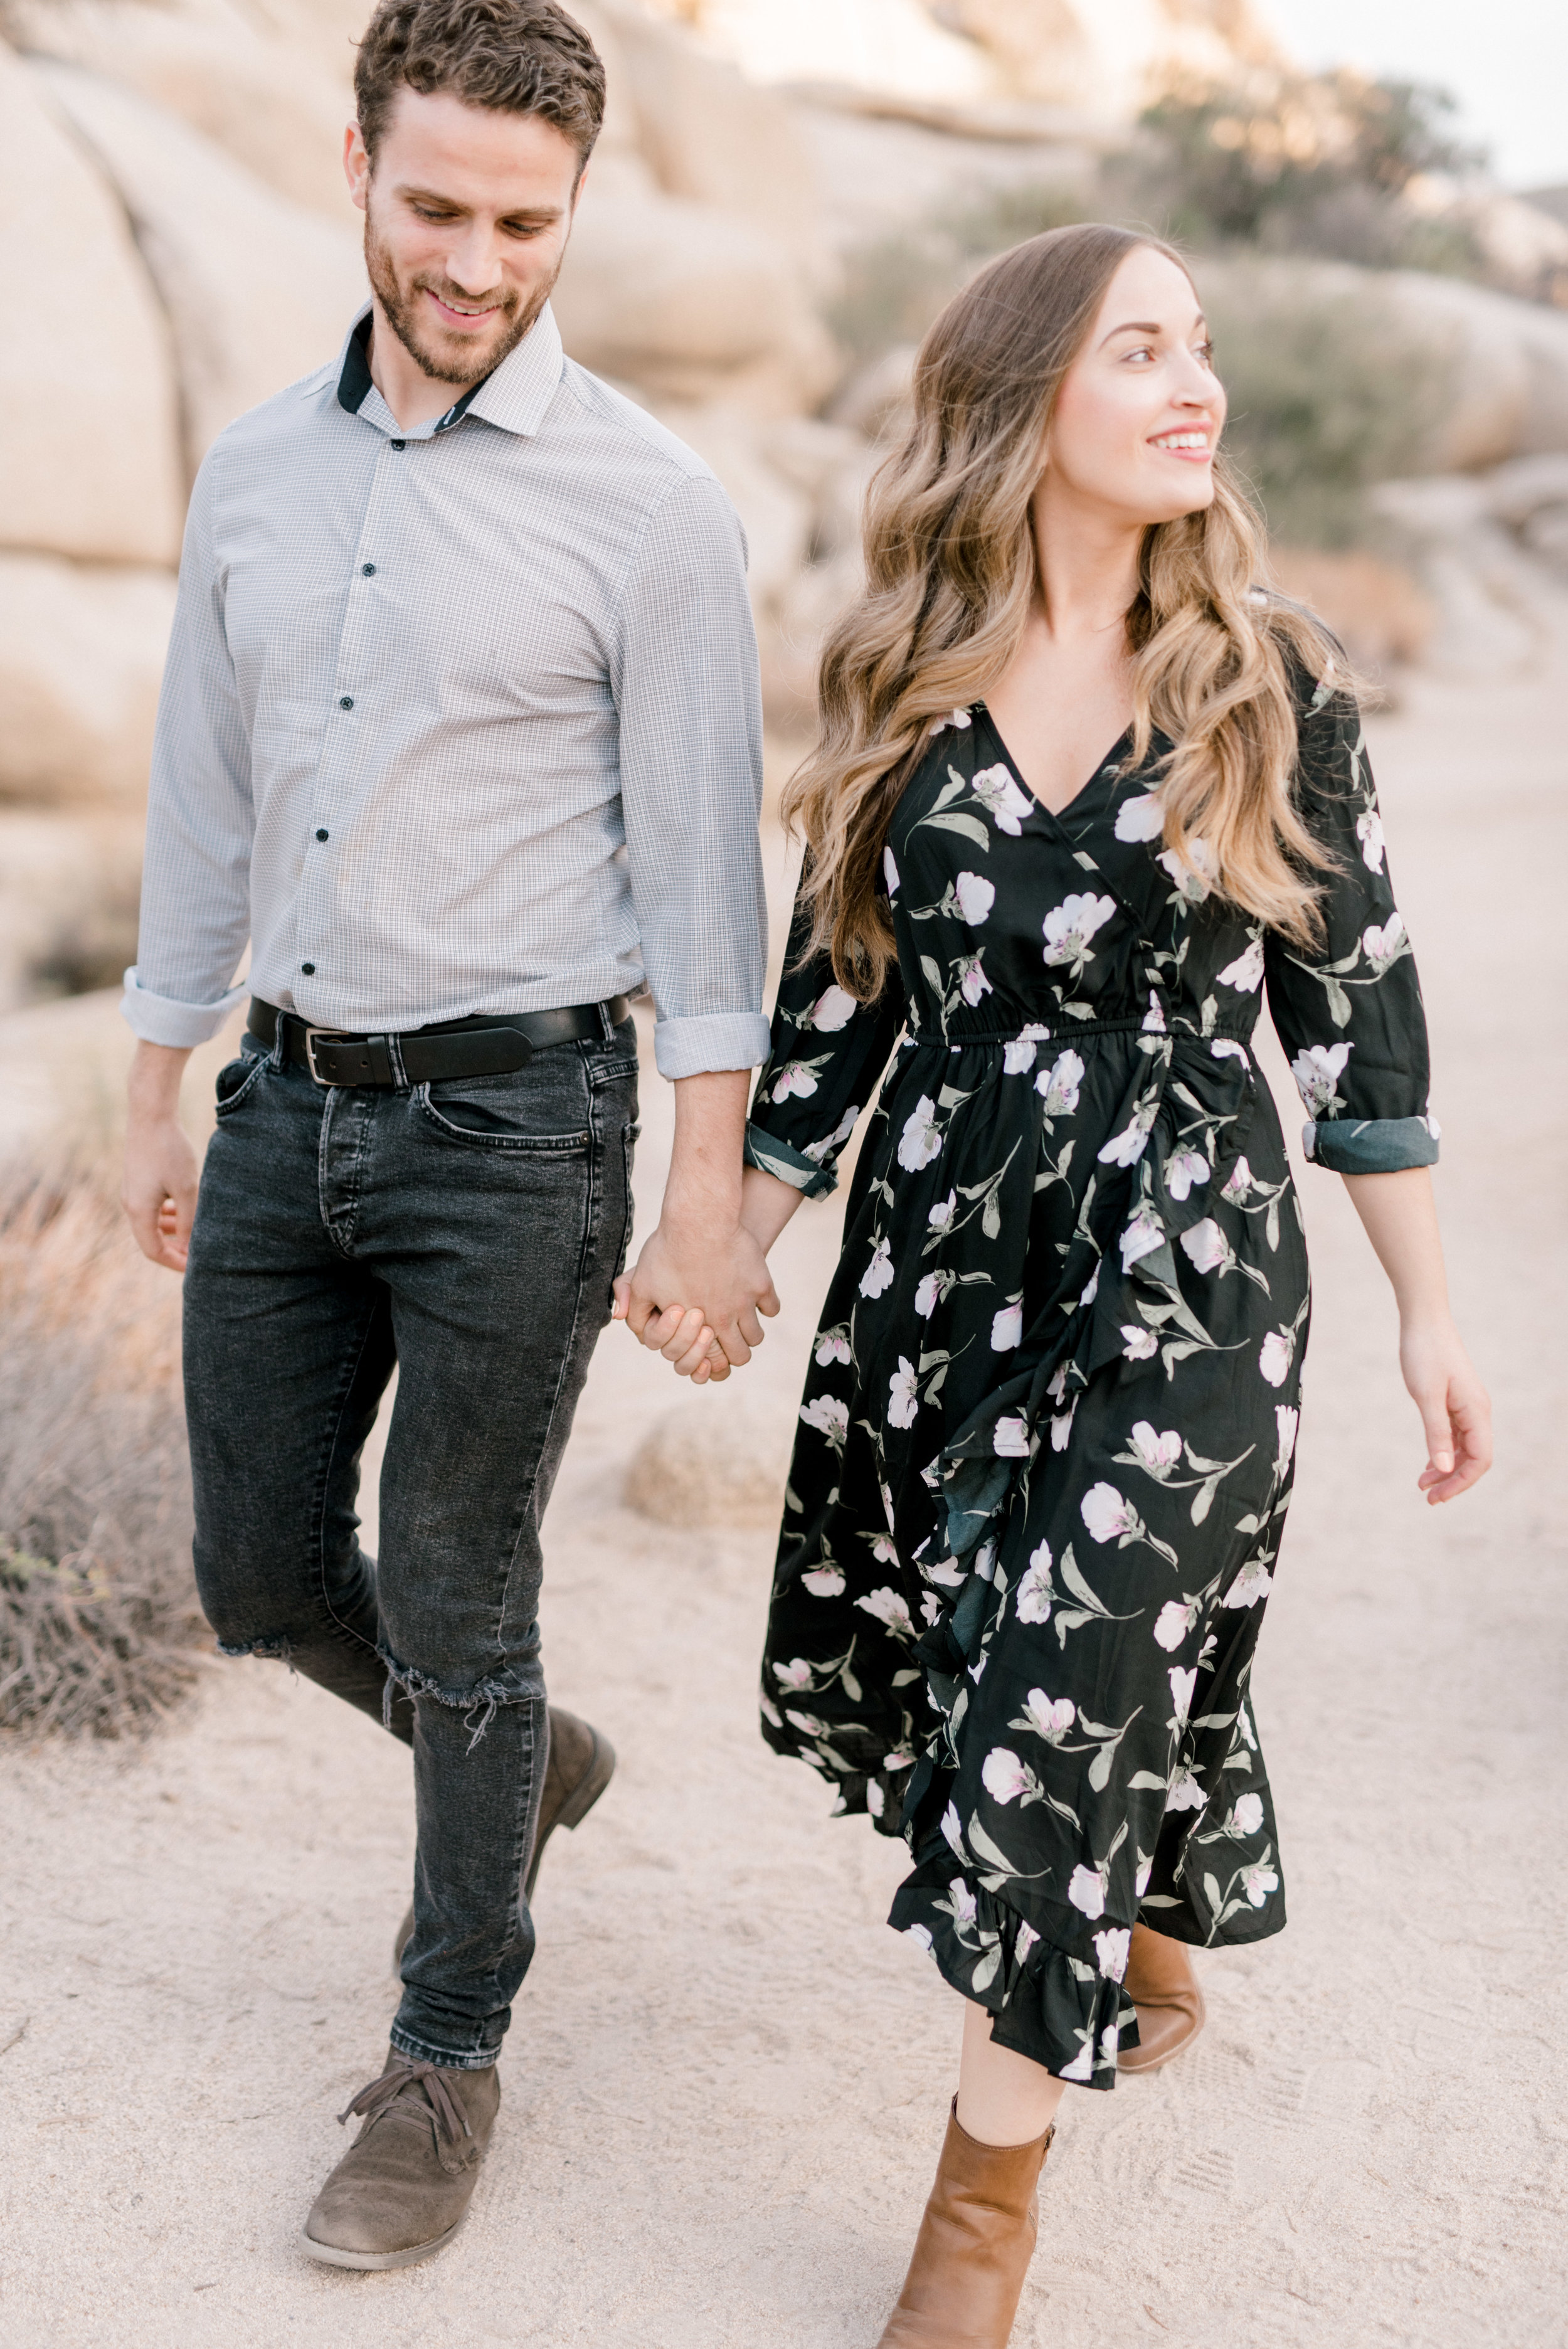 We simply adore this edgy, yet put together boho look from Jenna and Sam's free-spirited desert engagement session in Joshue Tree